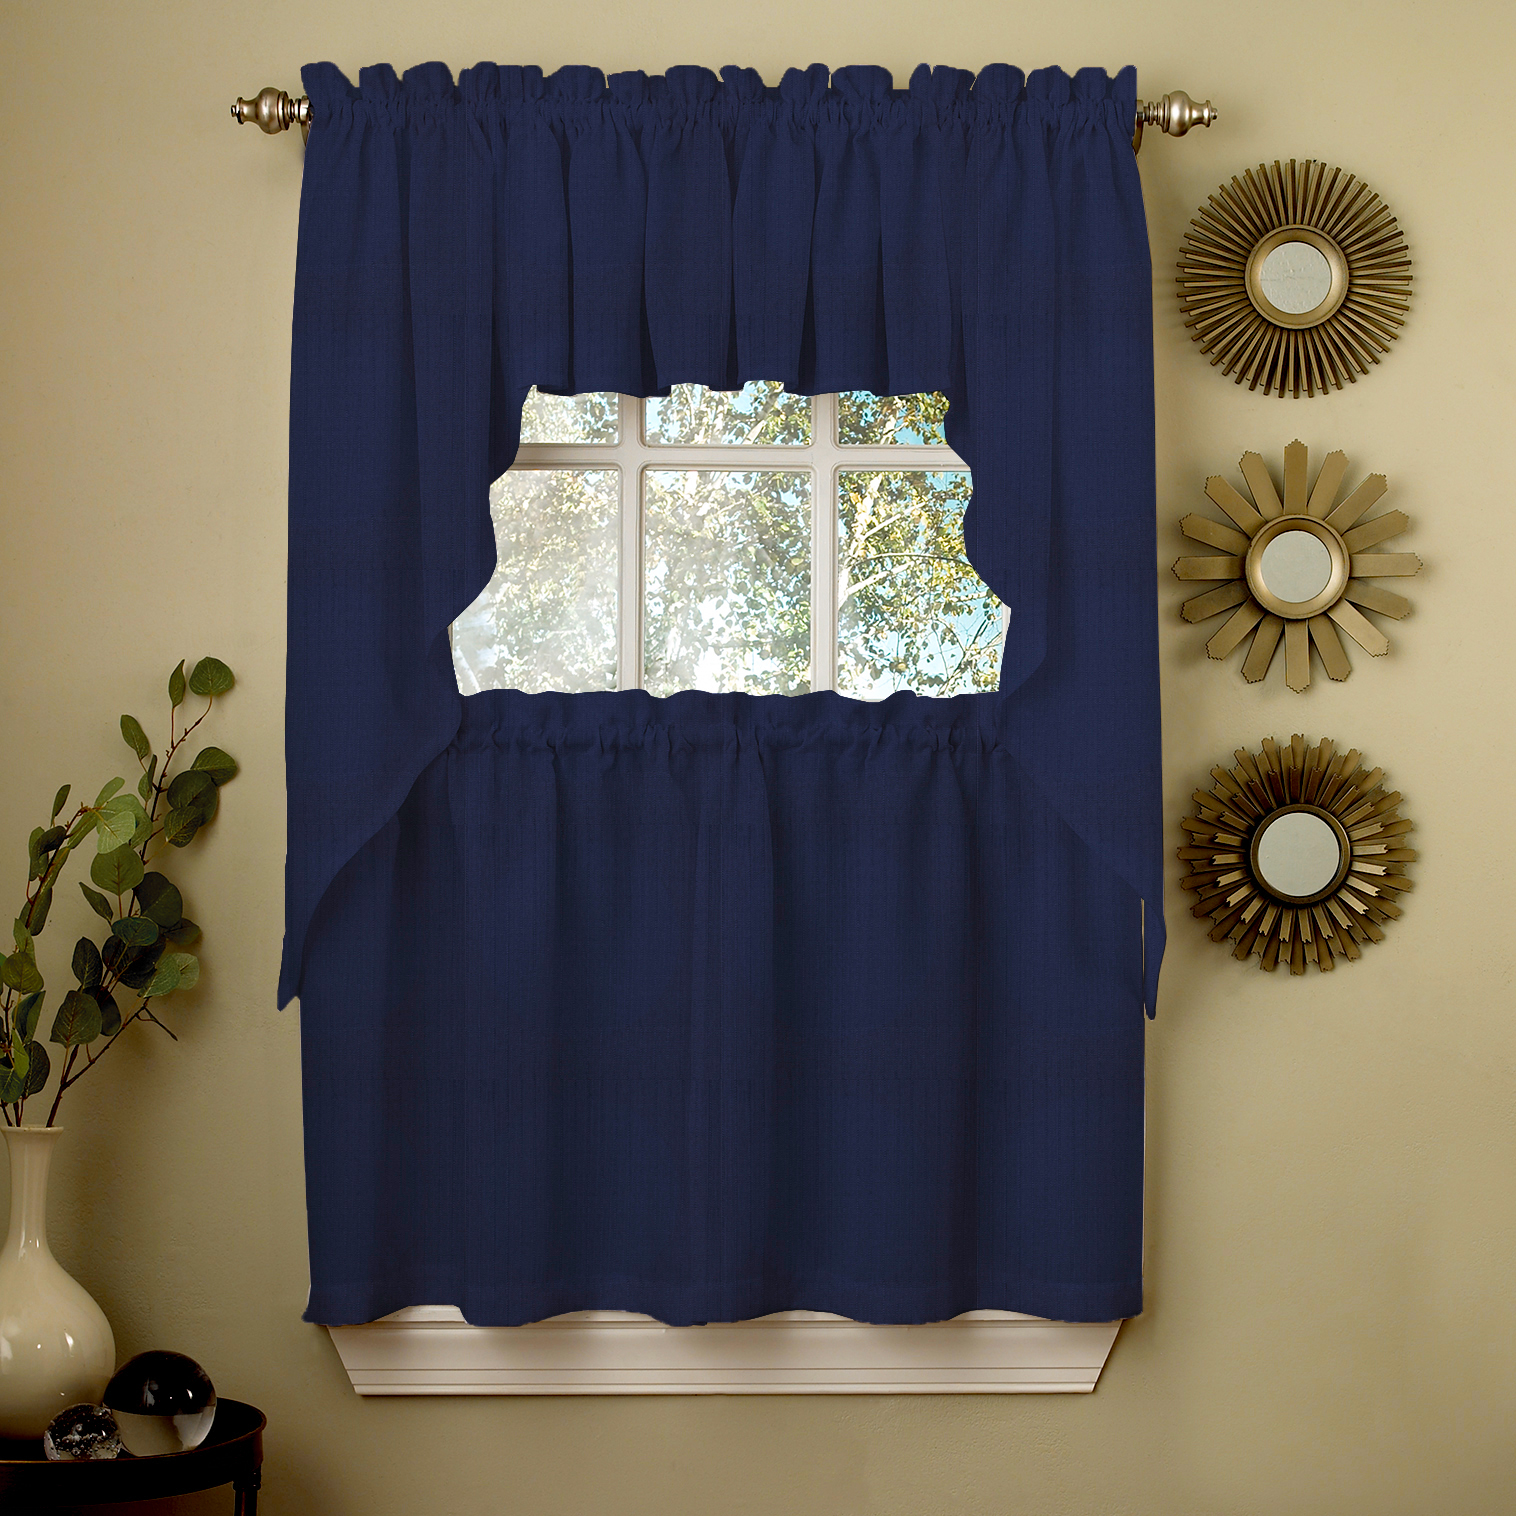 swag kitchen curtains remodeling open living room navy solid opaque ribcord choice of tiers valance or walmart com